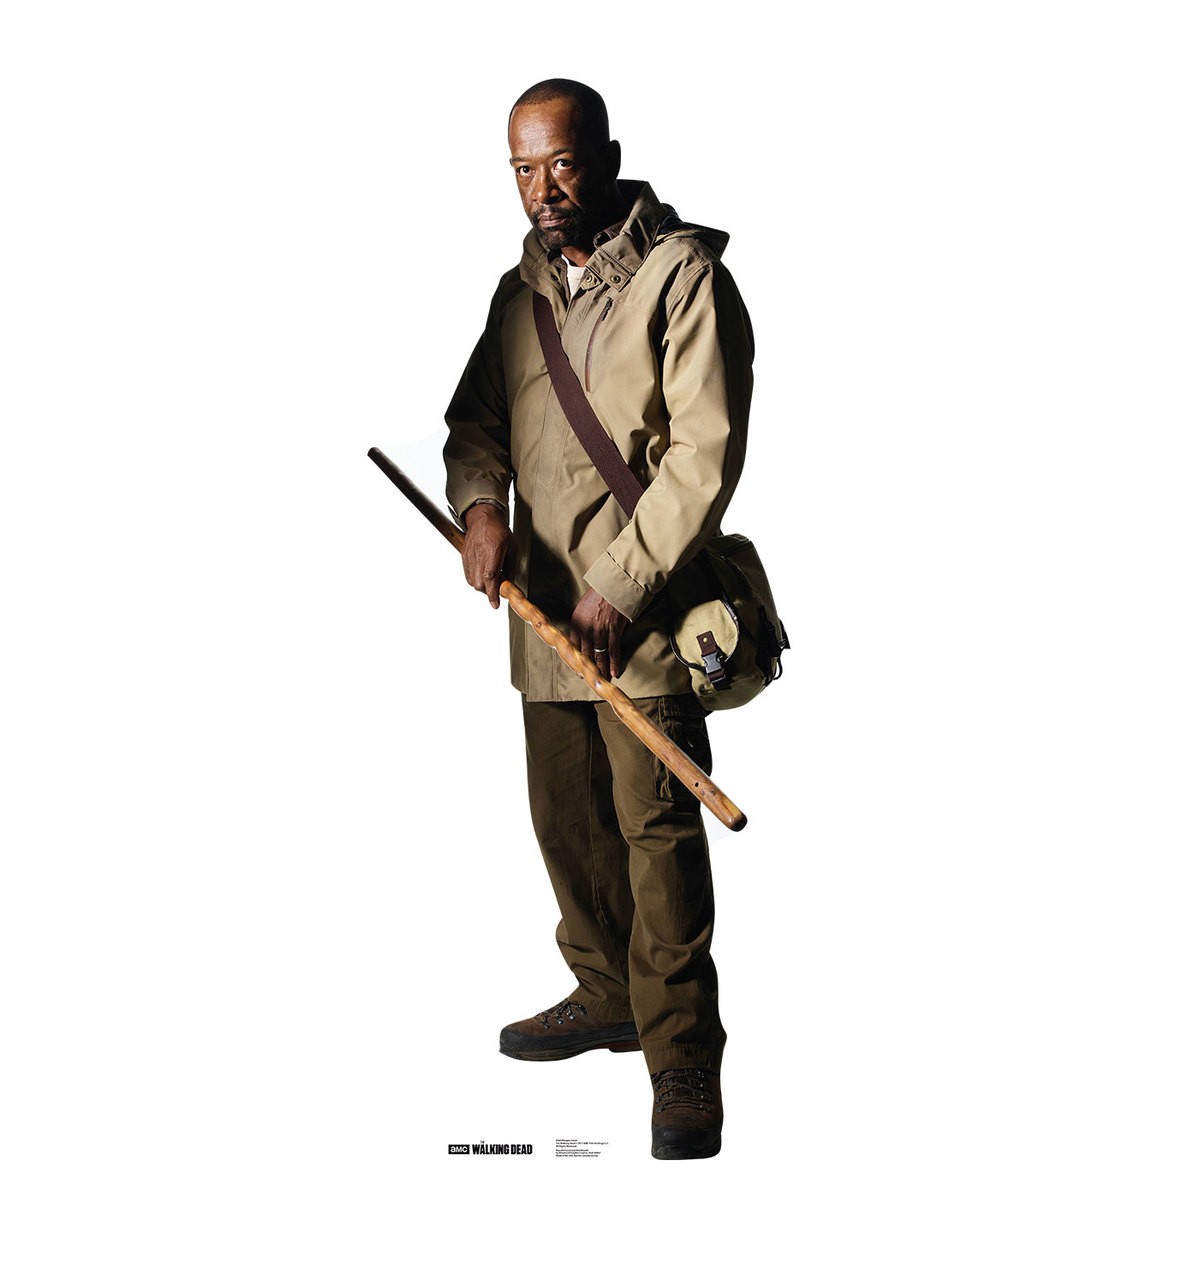 Life-size Morgan Jones (The Walking Dead) Cardboard Standup | Cardboard Cutout 3